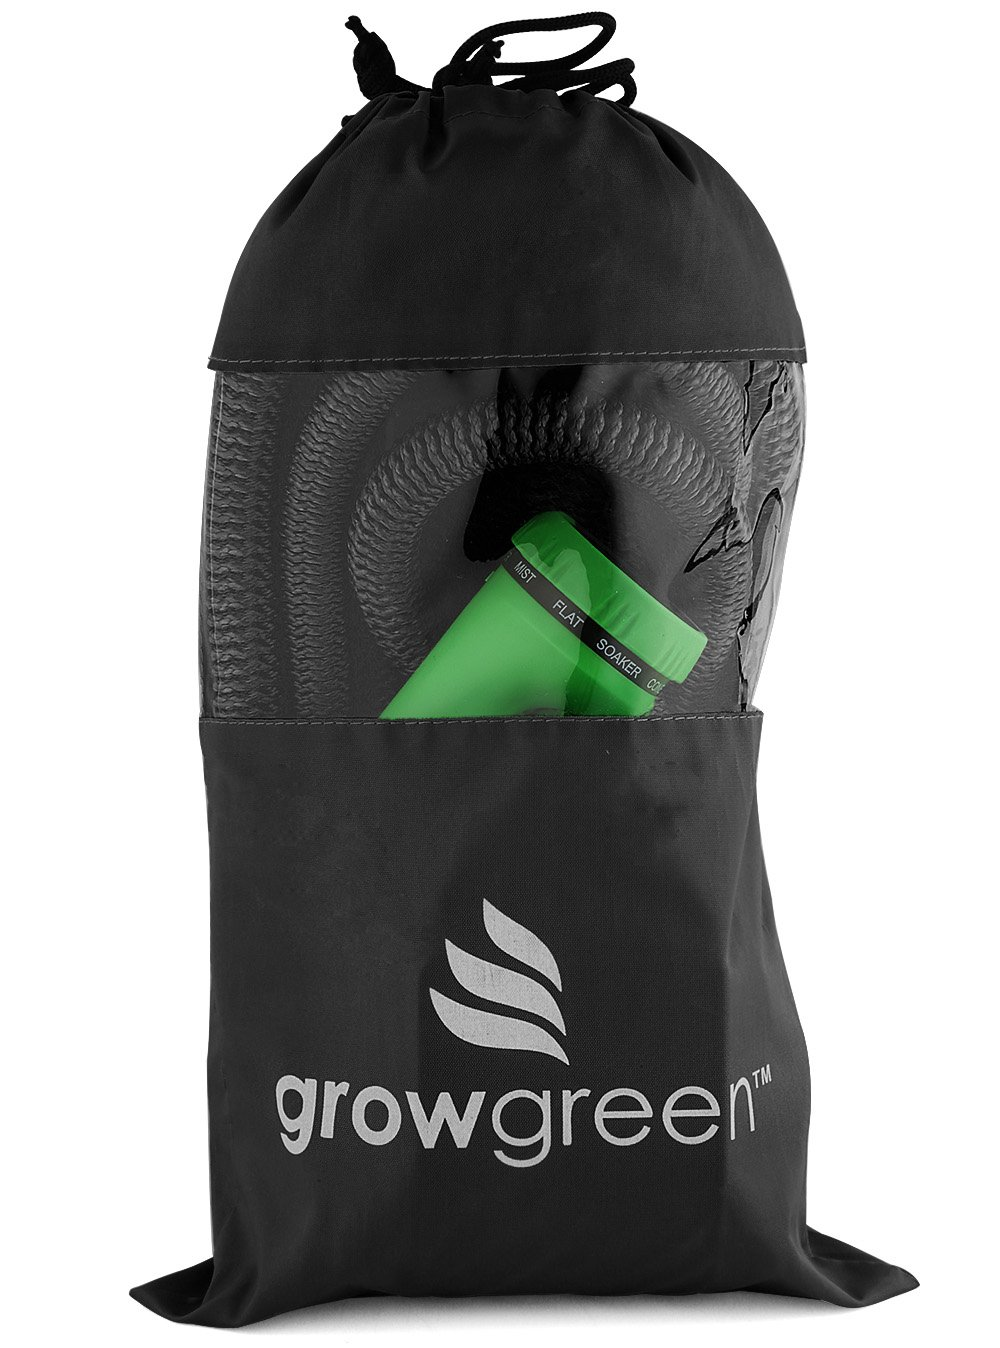 GrowGreen Heavy Duty Expandable Garden Hose, Strongest Garden Hose with Solid Brass Connector, Flexible Water Hose with Storage Sack (50 Feet)